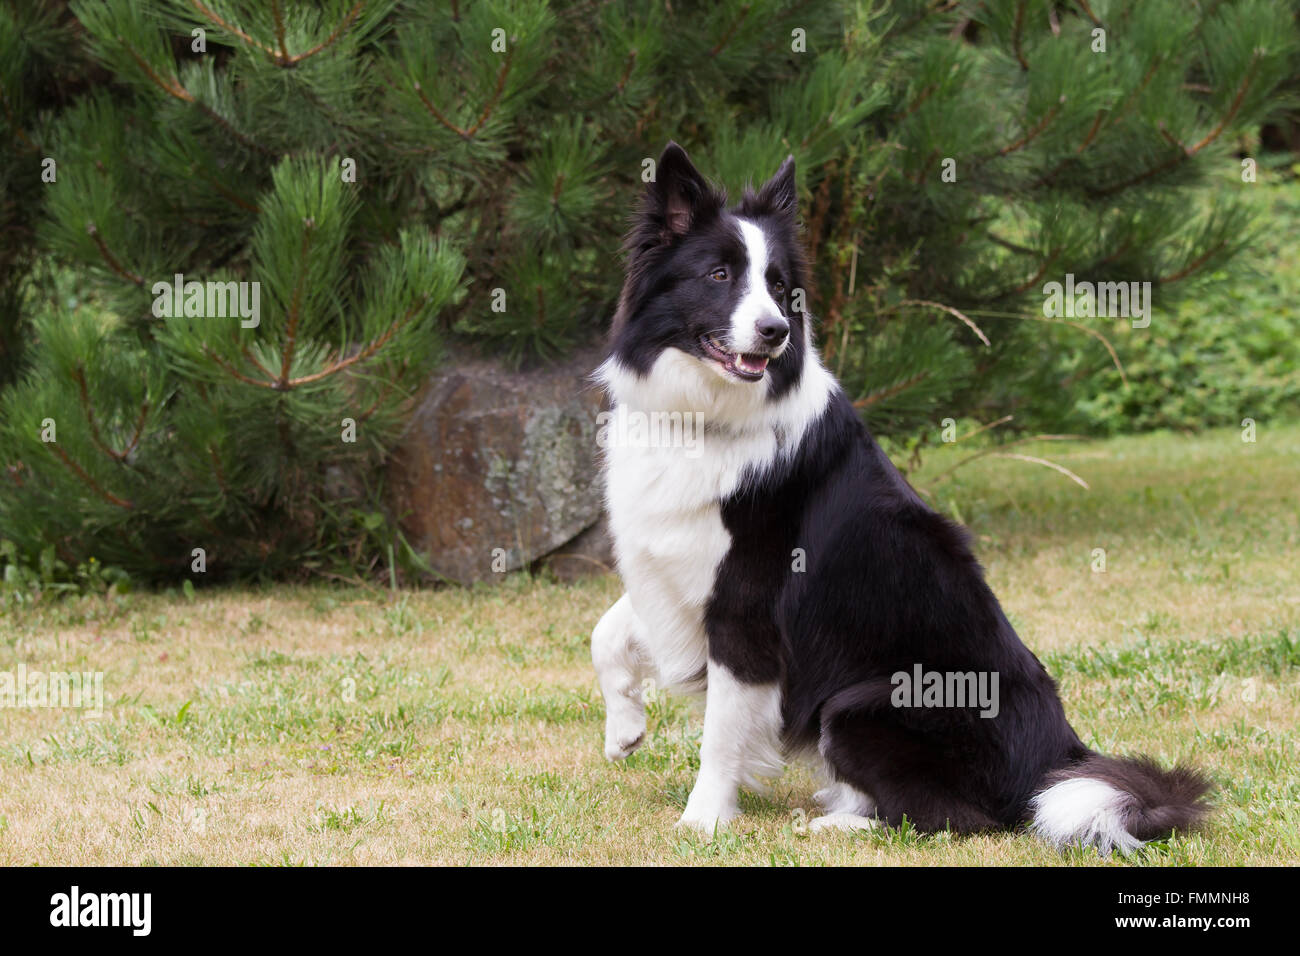 Border collie is sitting on the lawn. It has a raised right paw and head rotates backward. - Stock Image